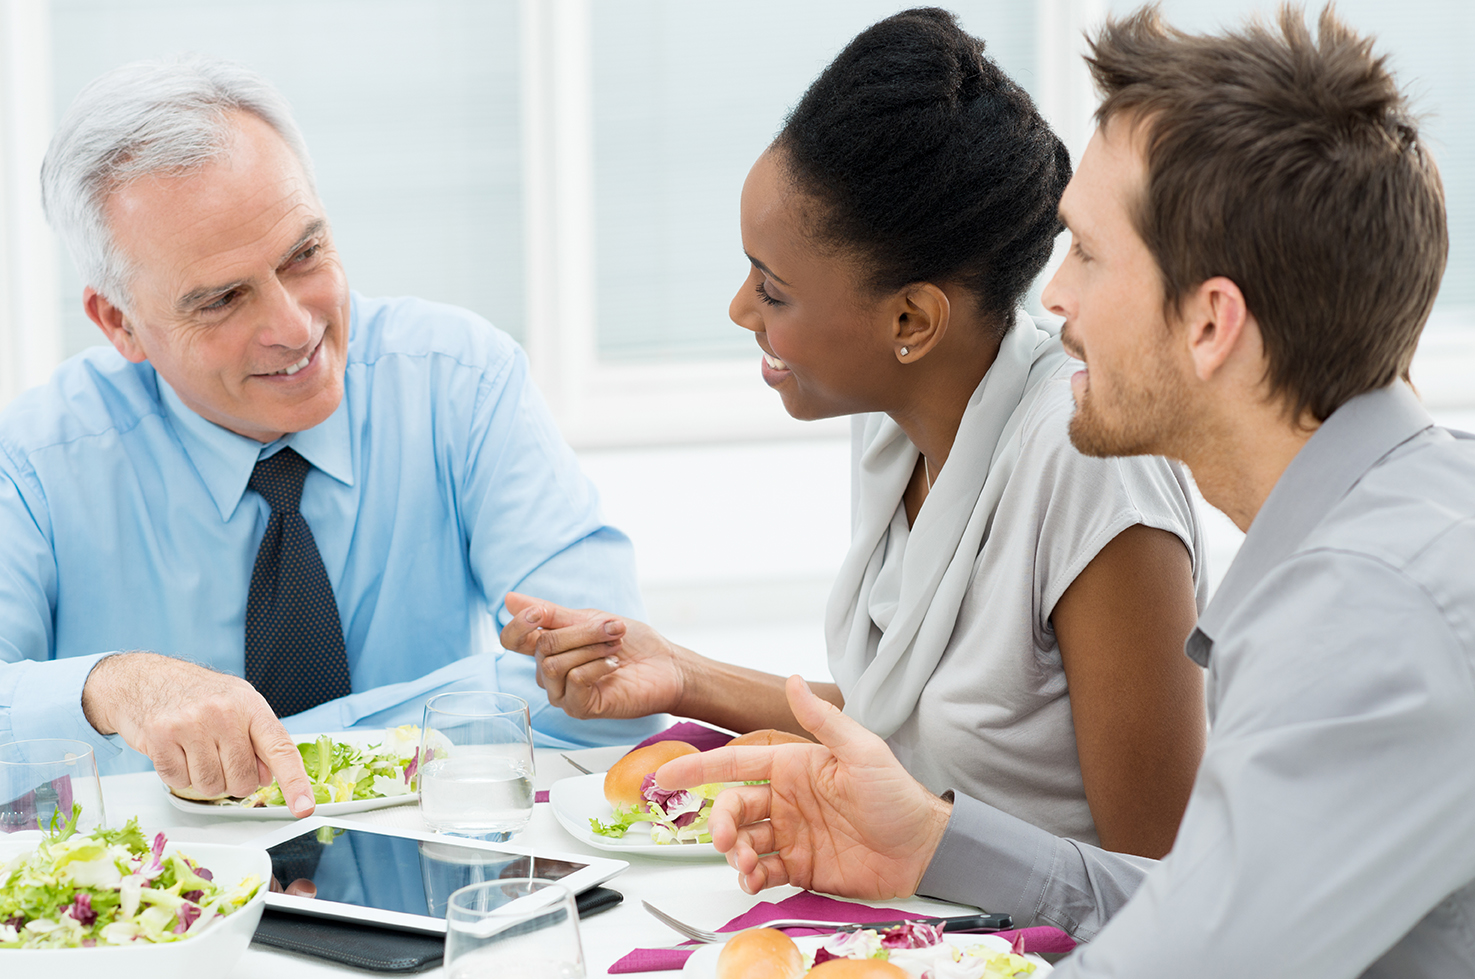 bigstock-Business-Colleagues-Eating-Mea-46401748